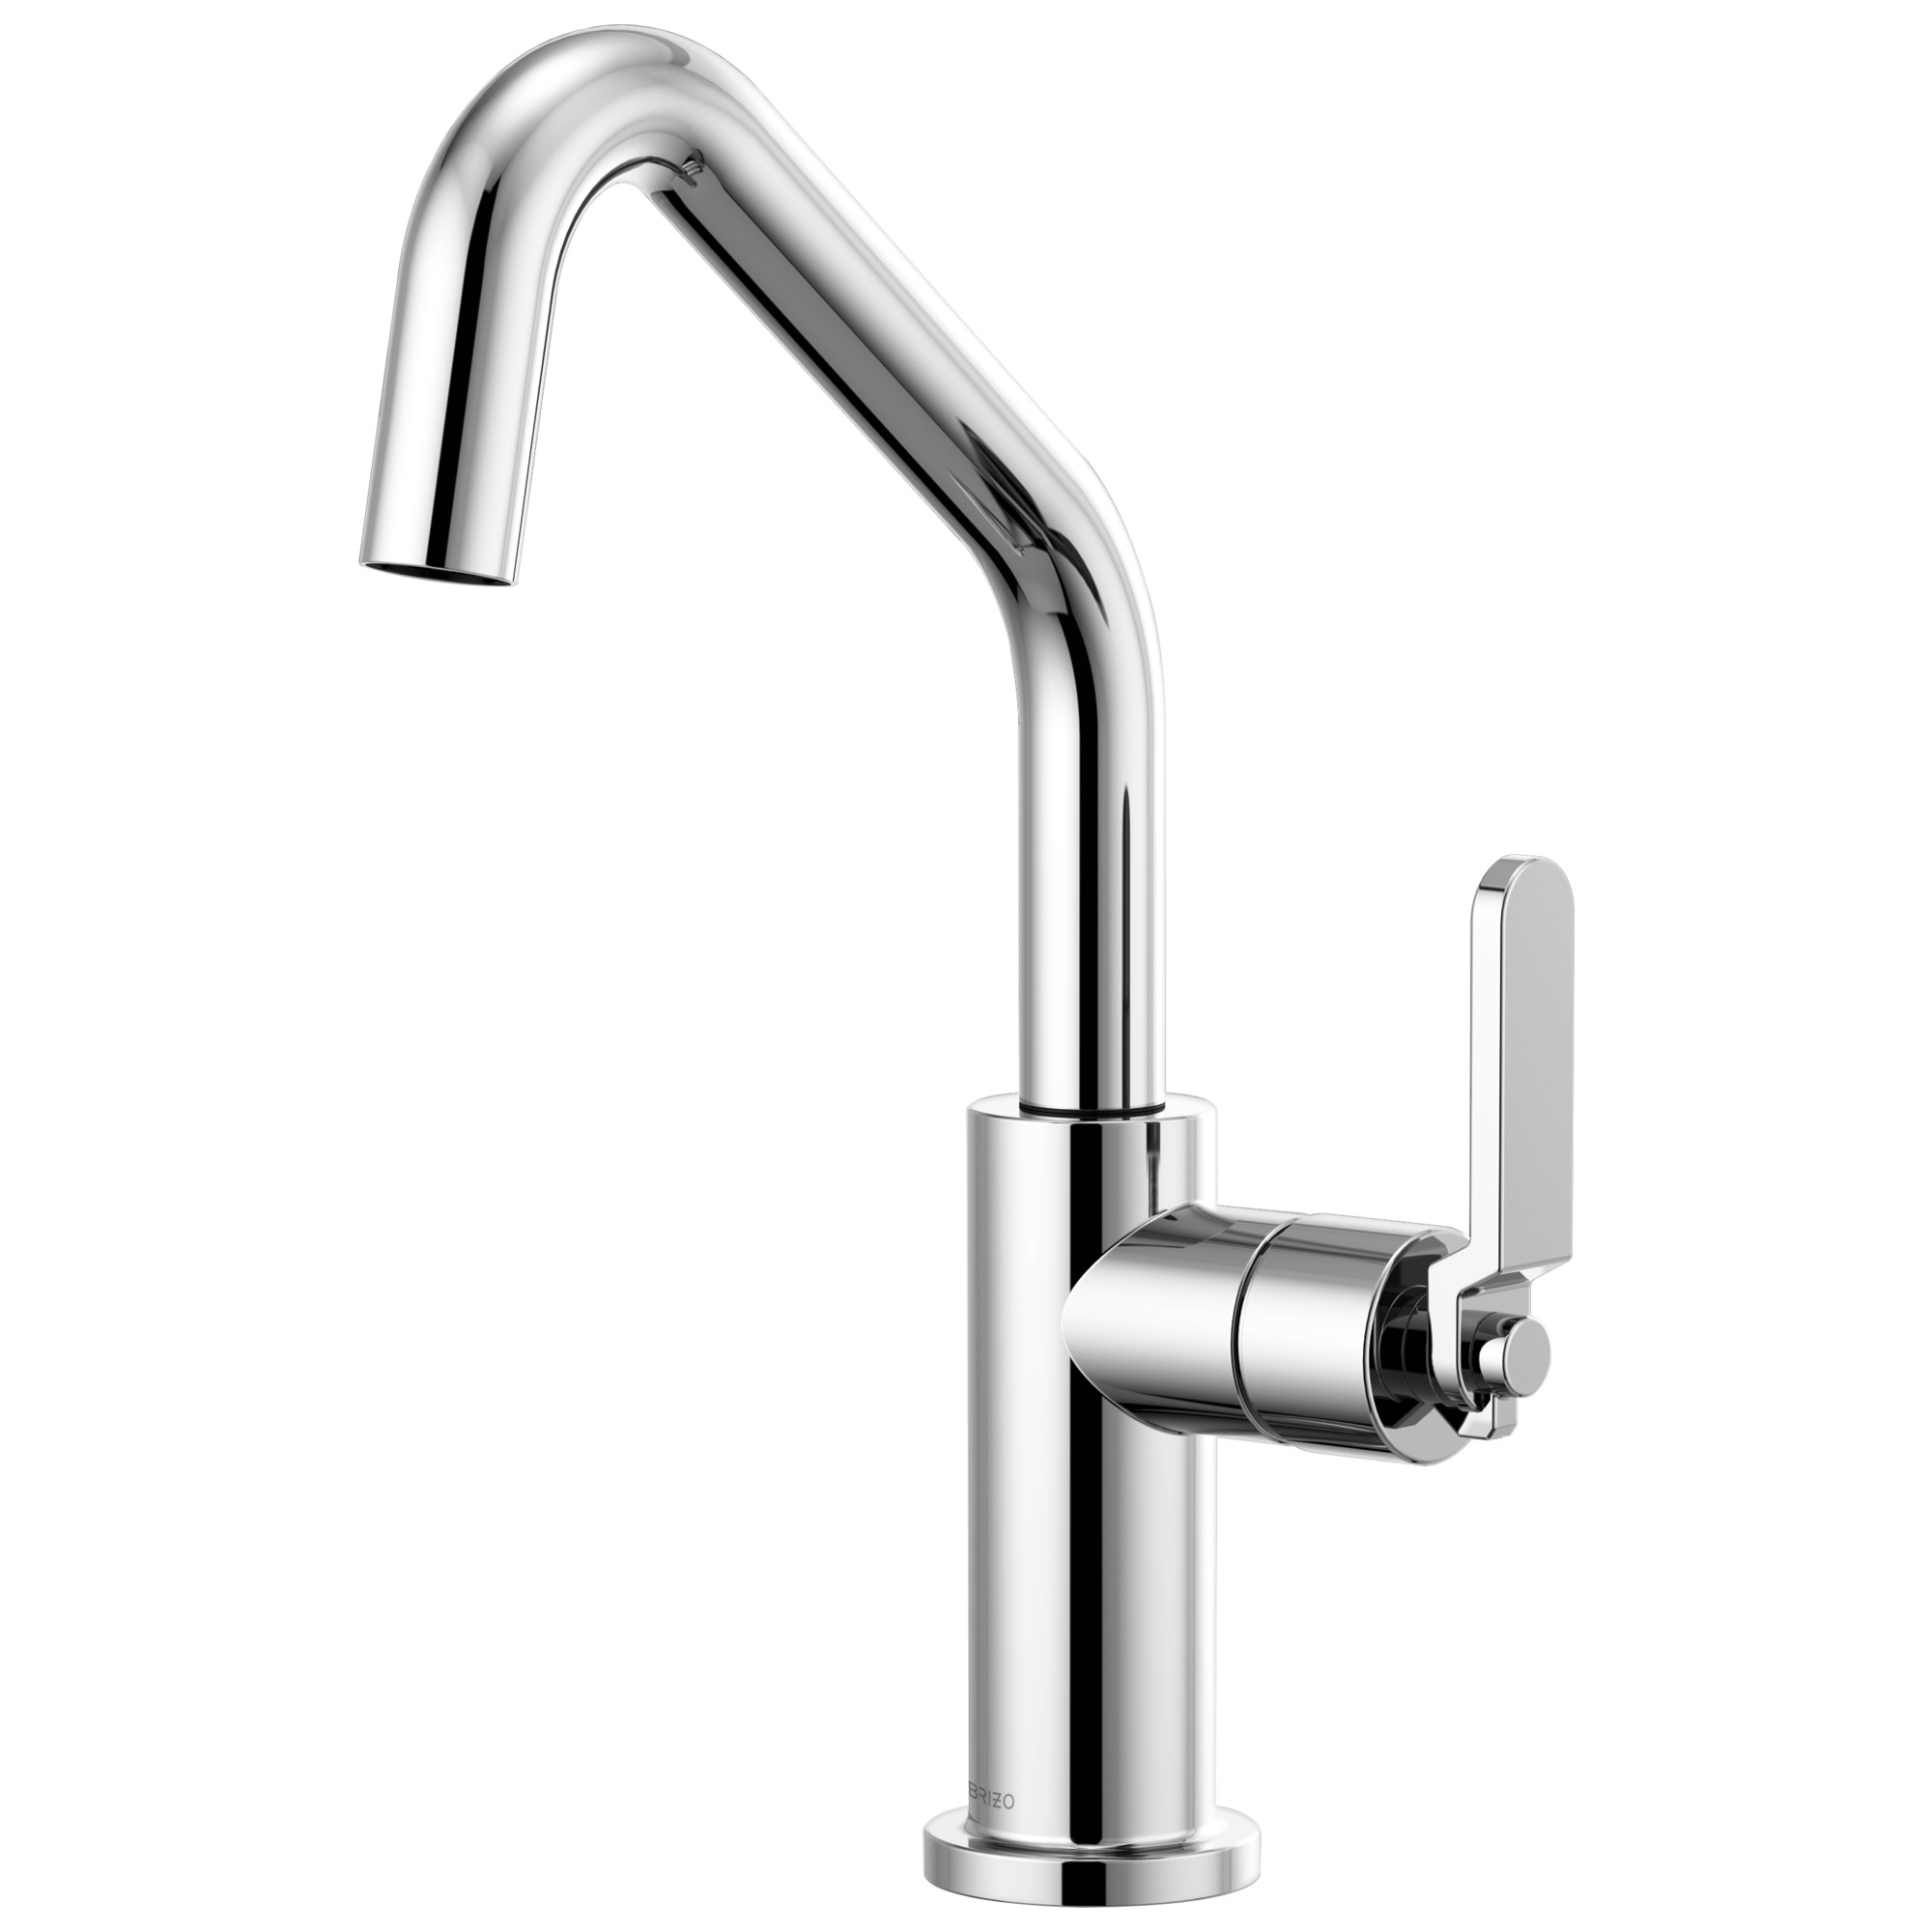 Brizo 61064LF-PC Litze Bar Faucet with Angled Spout and Industrial Handle - Chrome